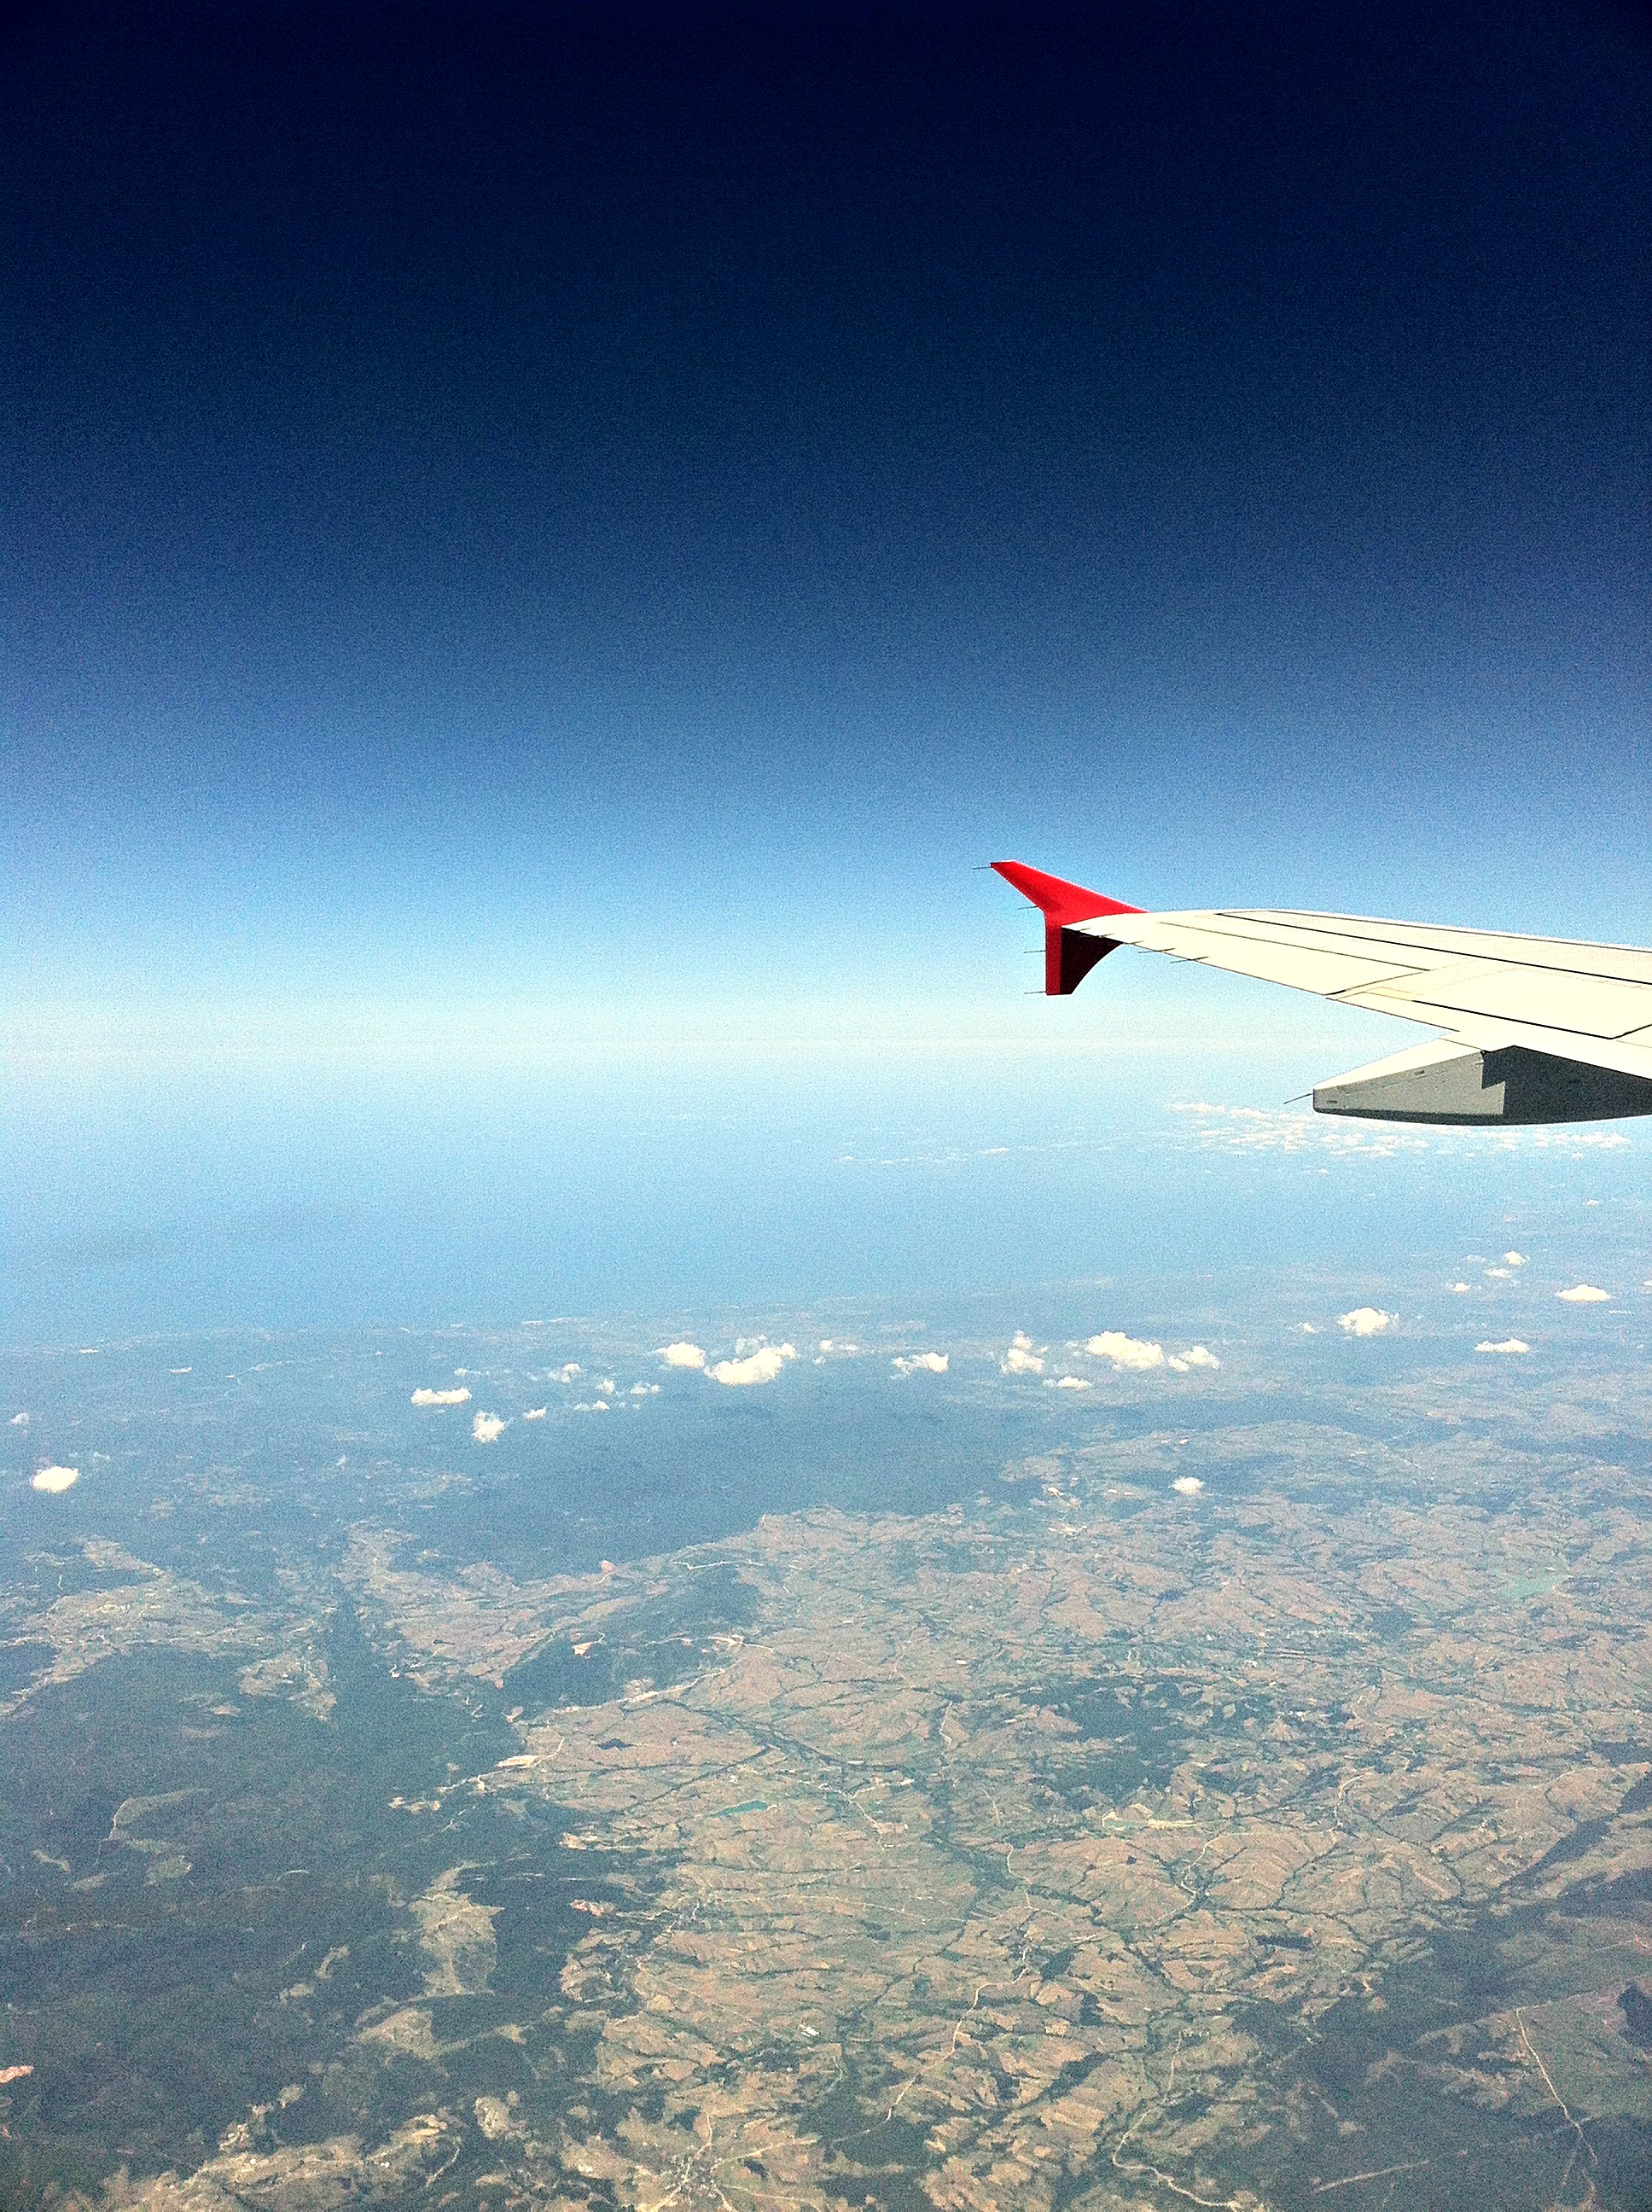 A few miles above Turkey.